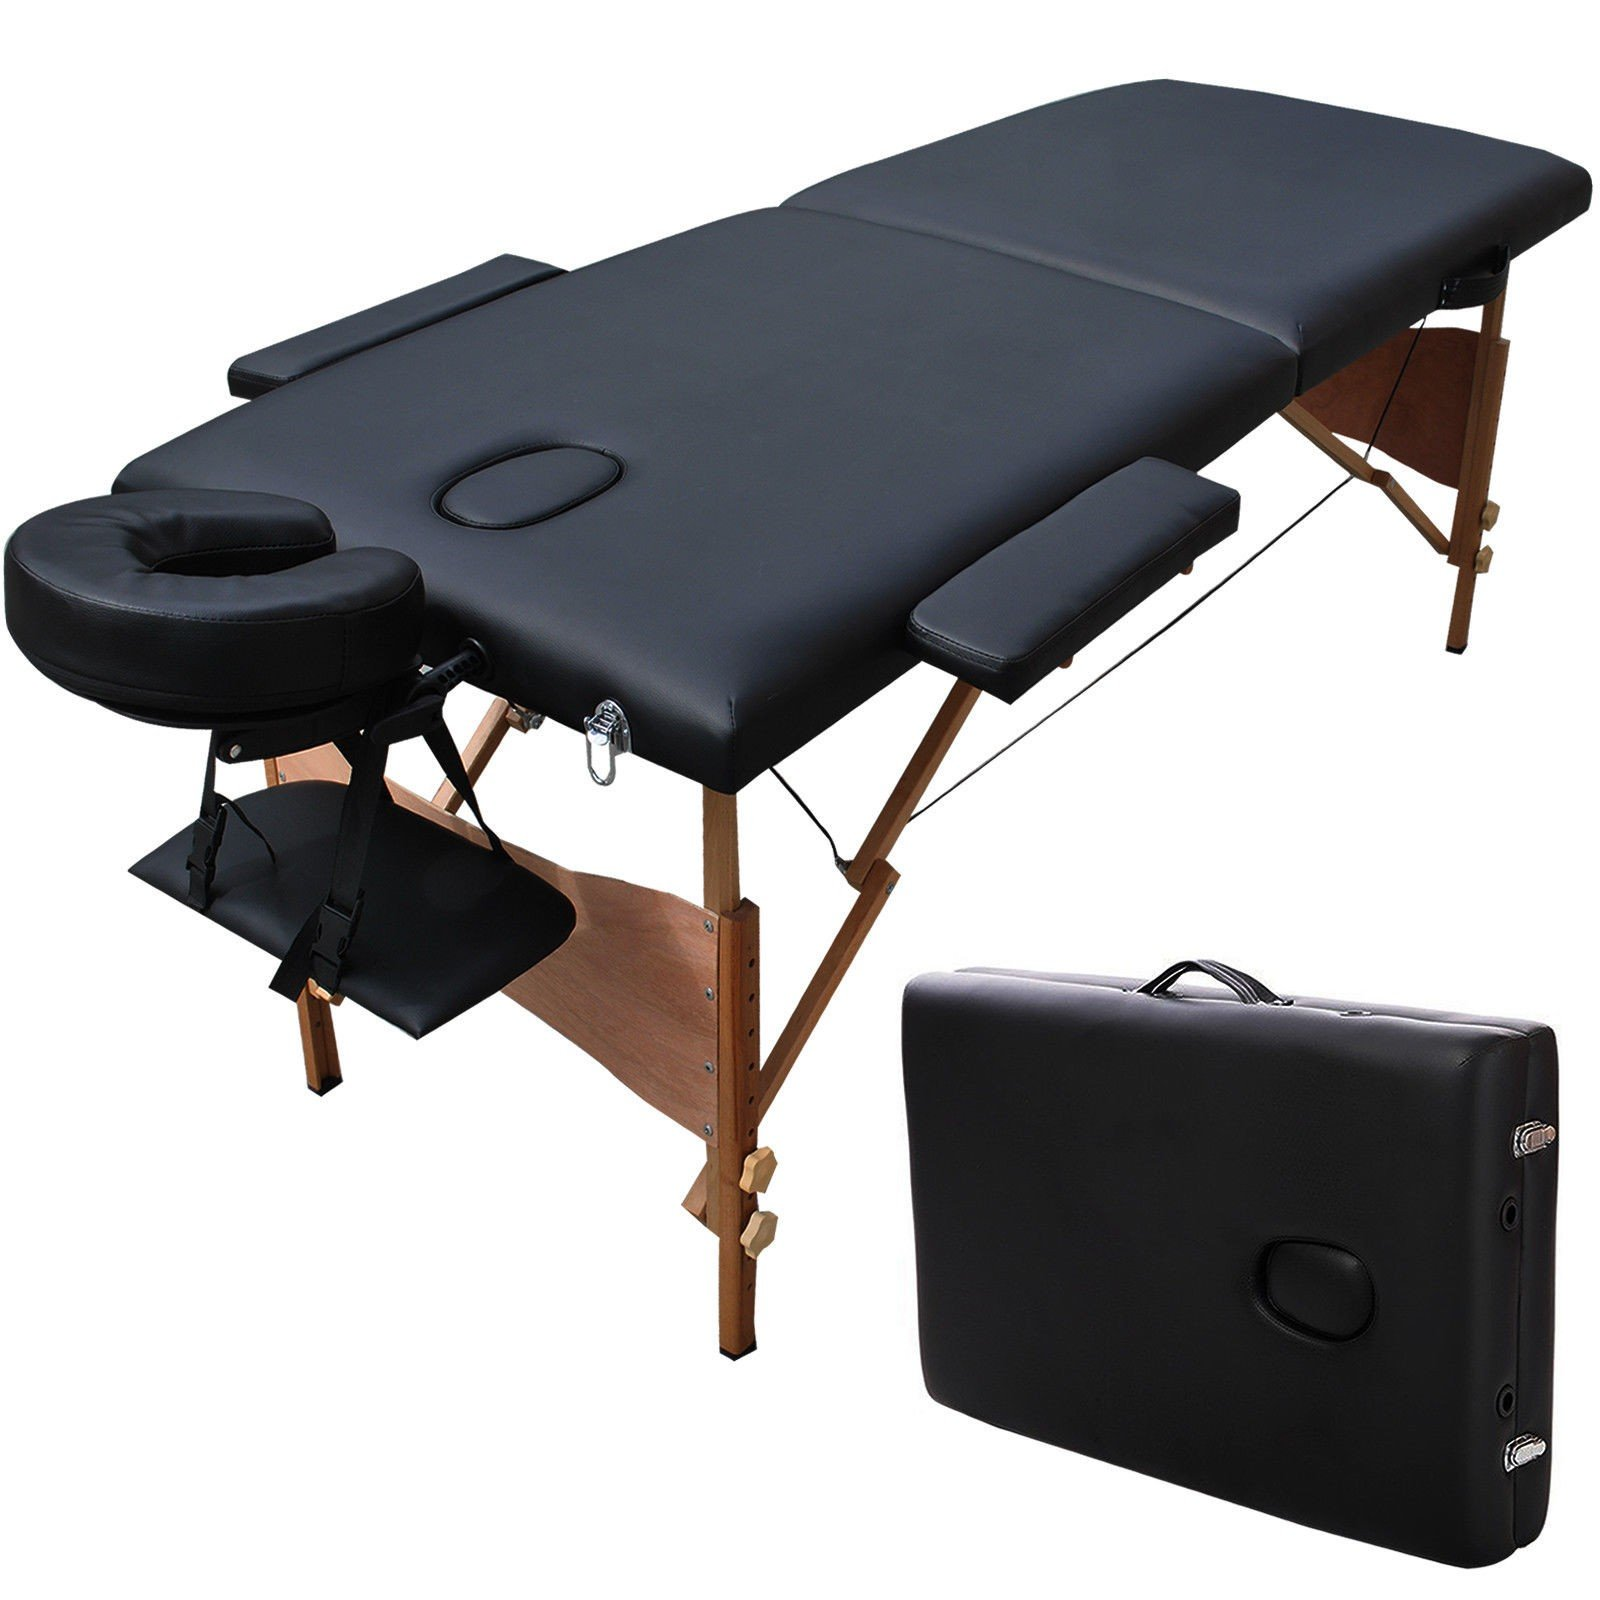 84'L Professional Portable Wood Massage Table Bed for Salon/Beauty/Physiotherapy/SPA/Tattoo(2 Section, Black)